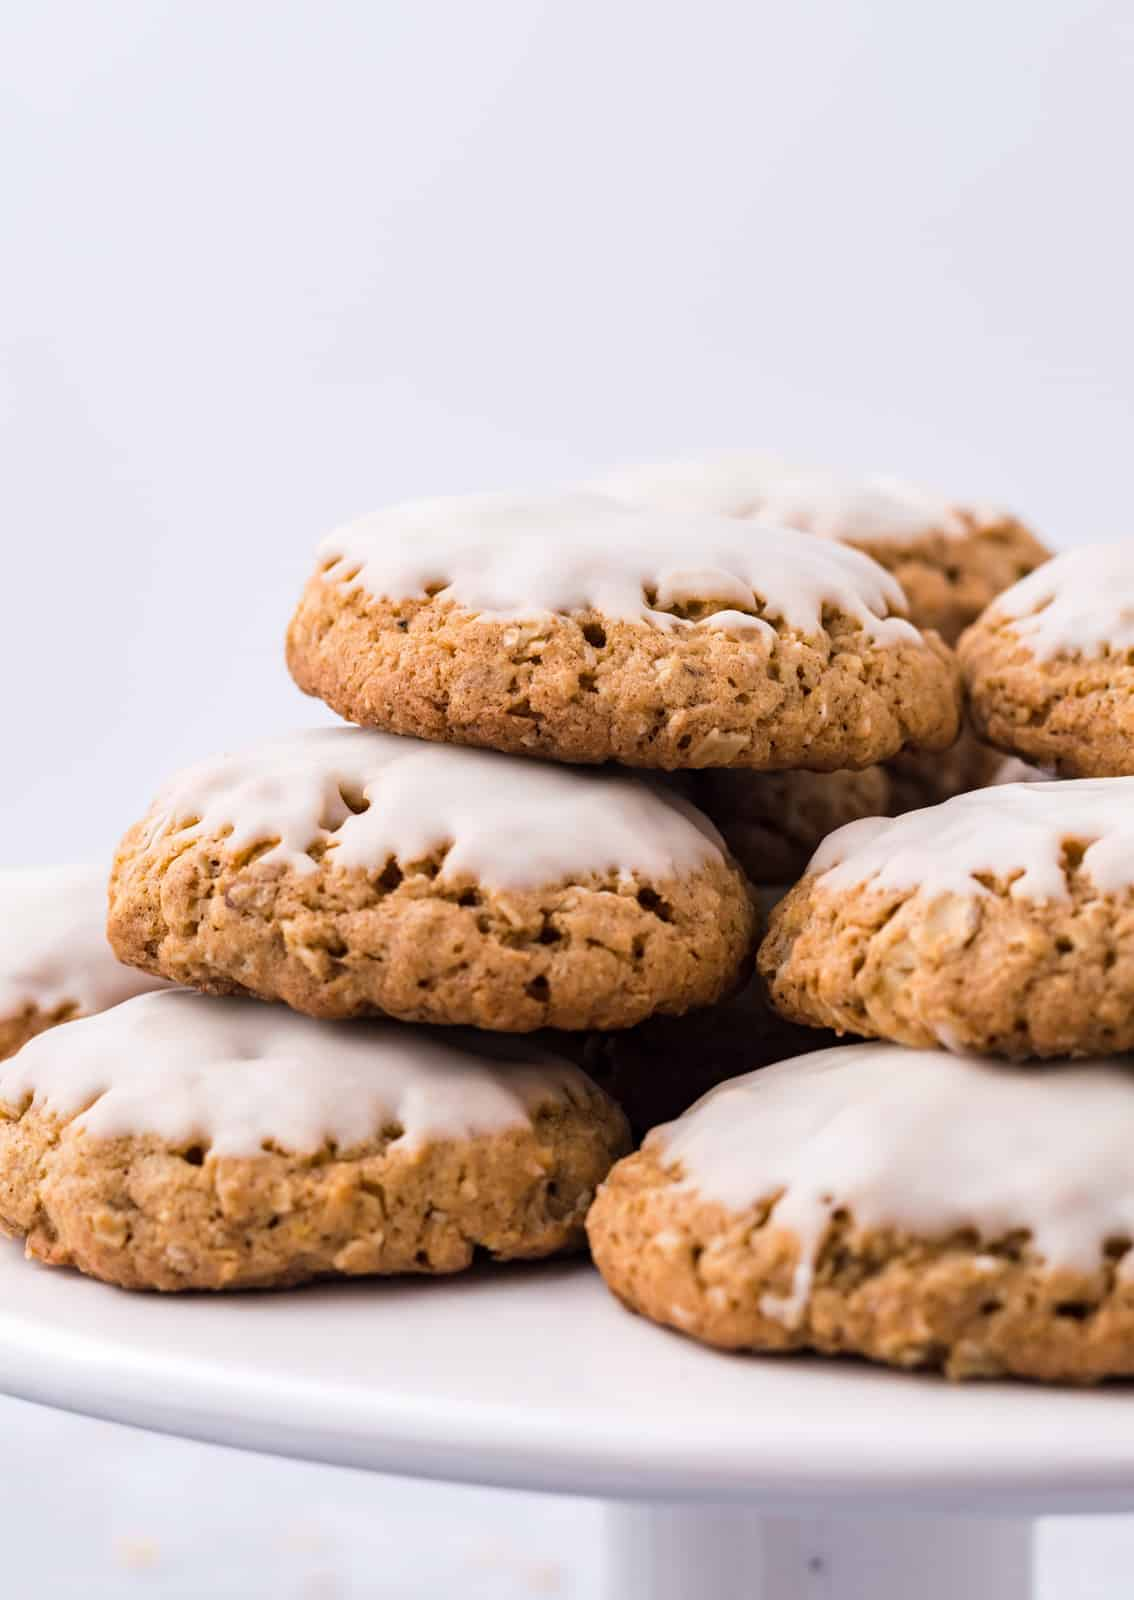 Side view of Cookies on stand.